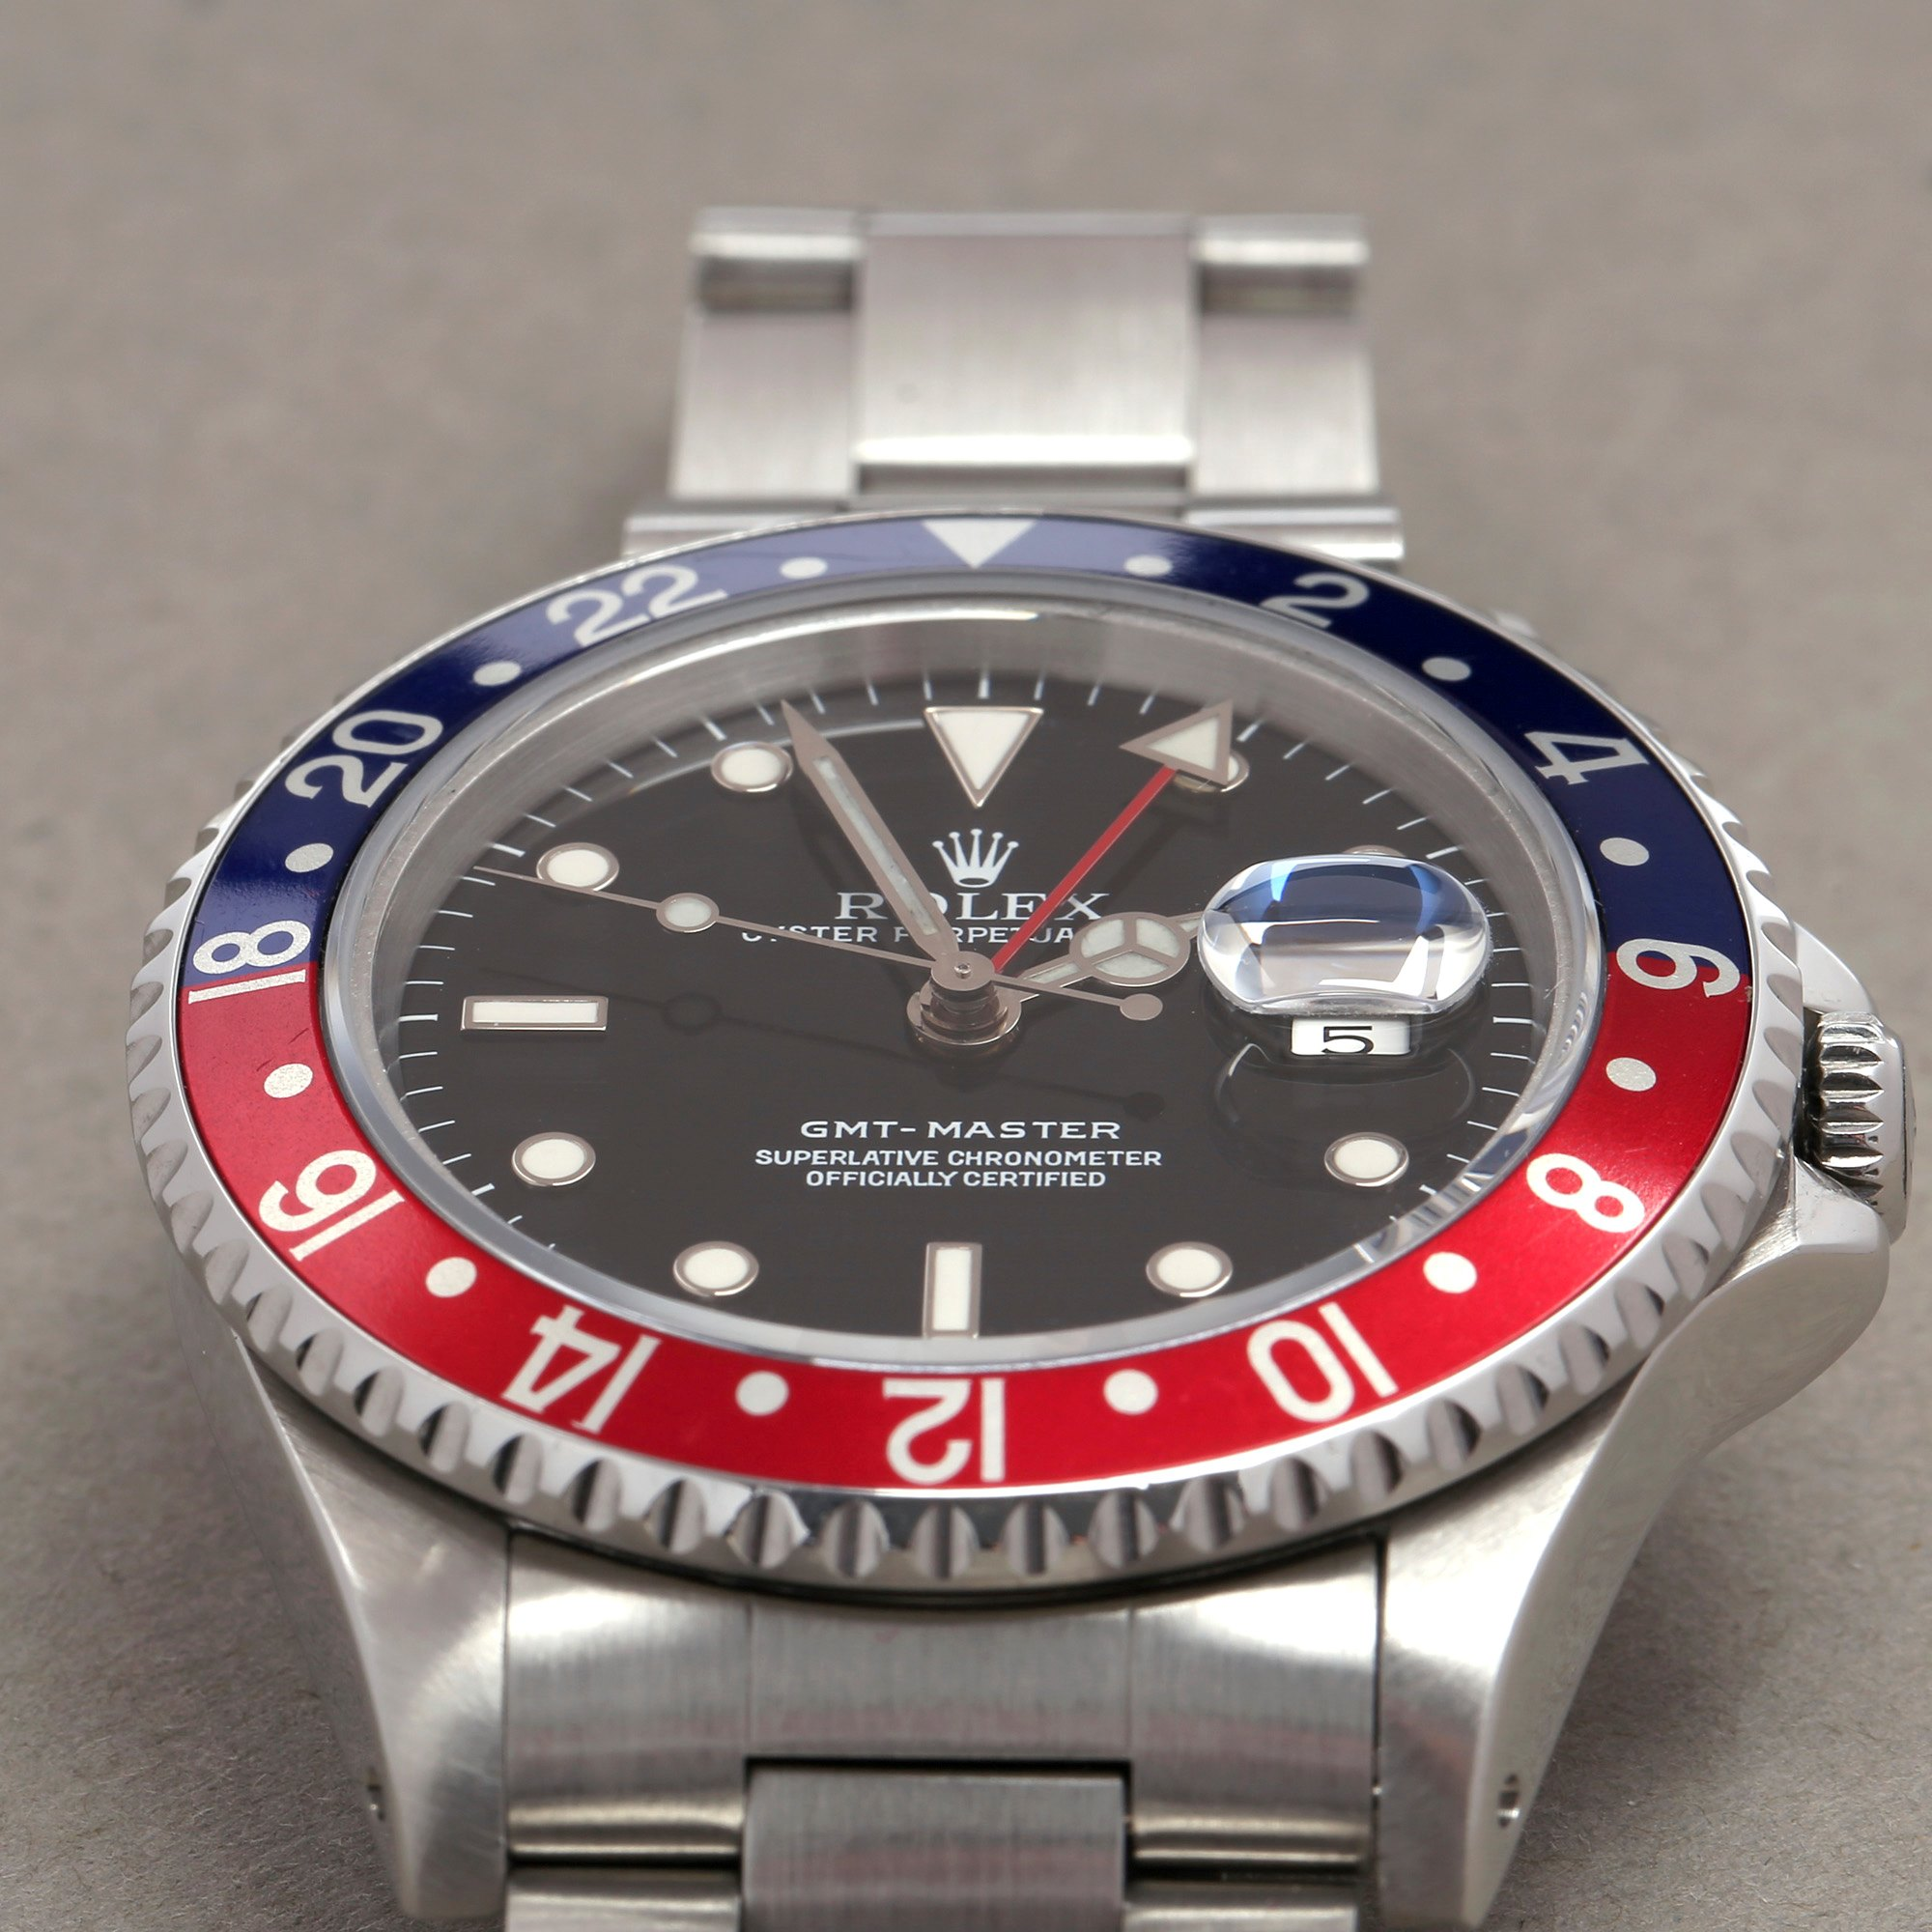 Rolex GMT-Master 16700 Men Stainless Steel Pepsi Serif Fat Font Watch - Image 9 of 11